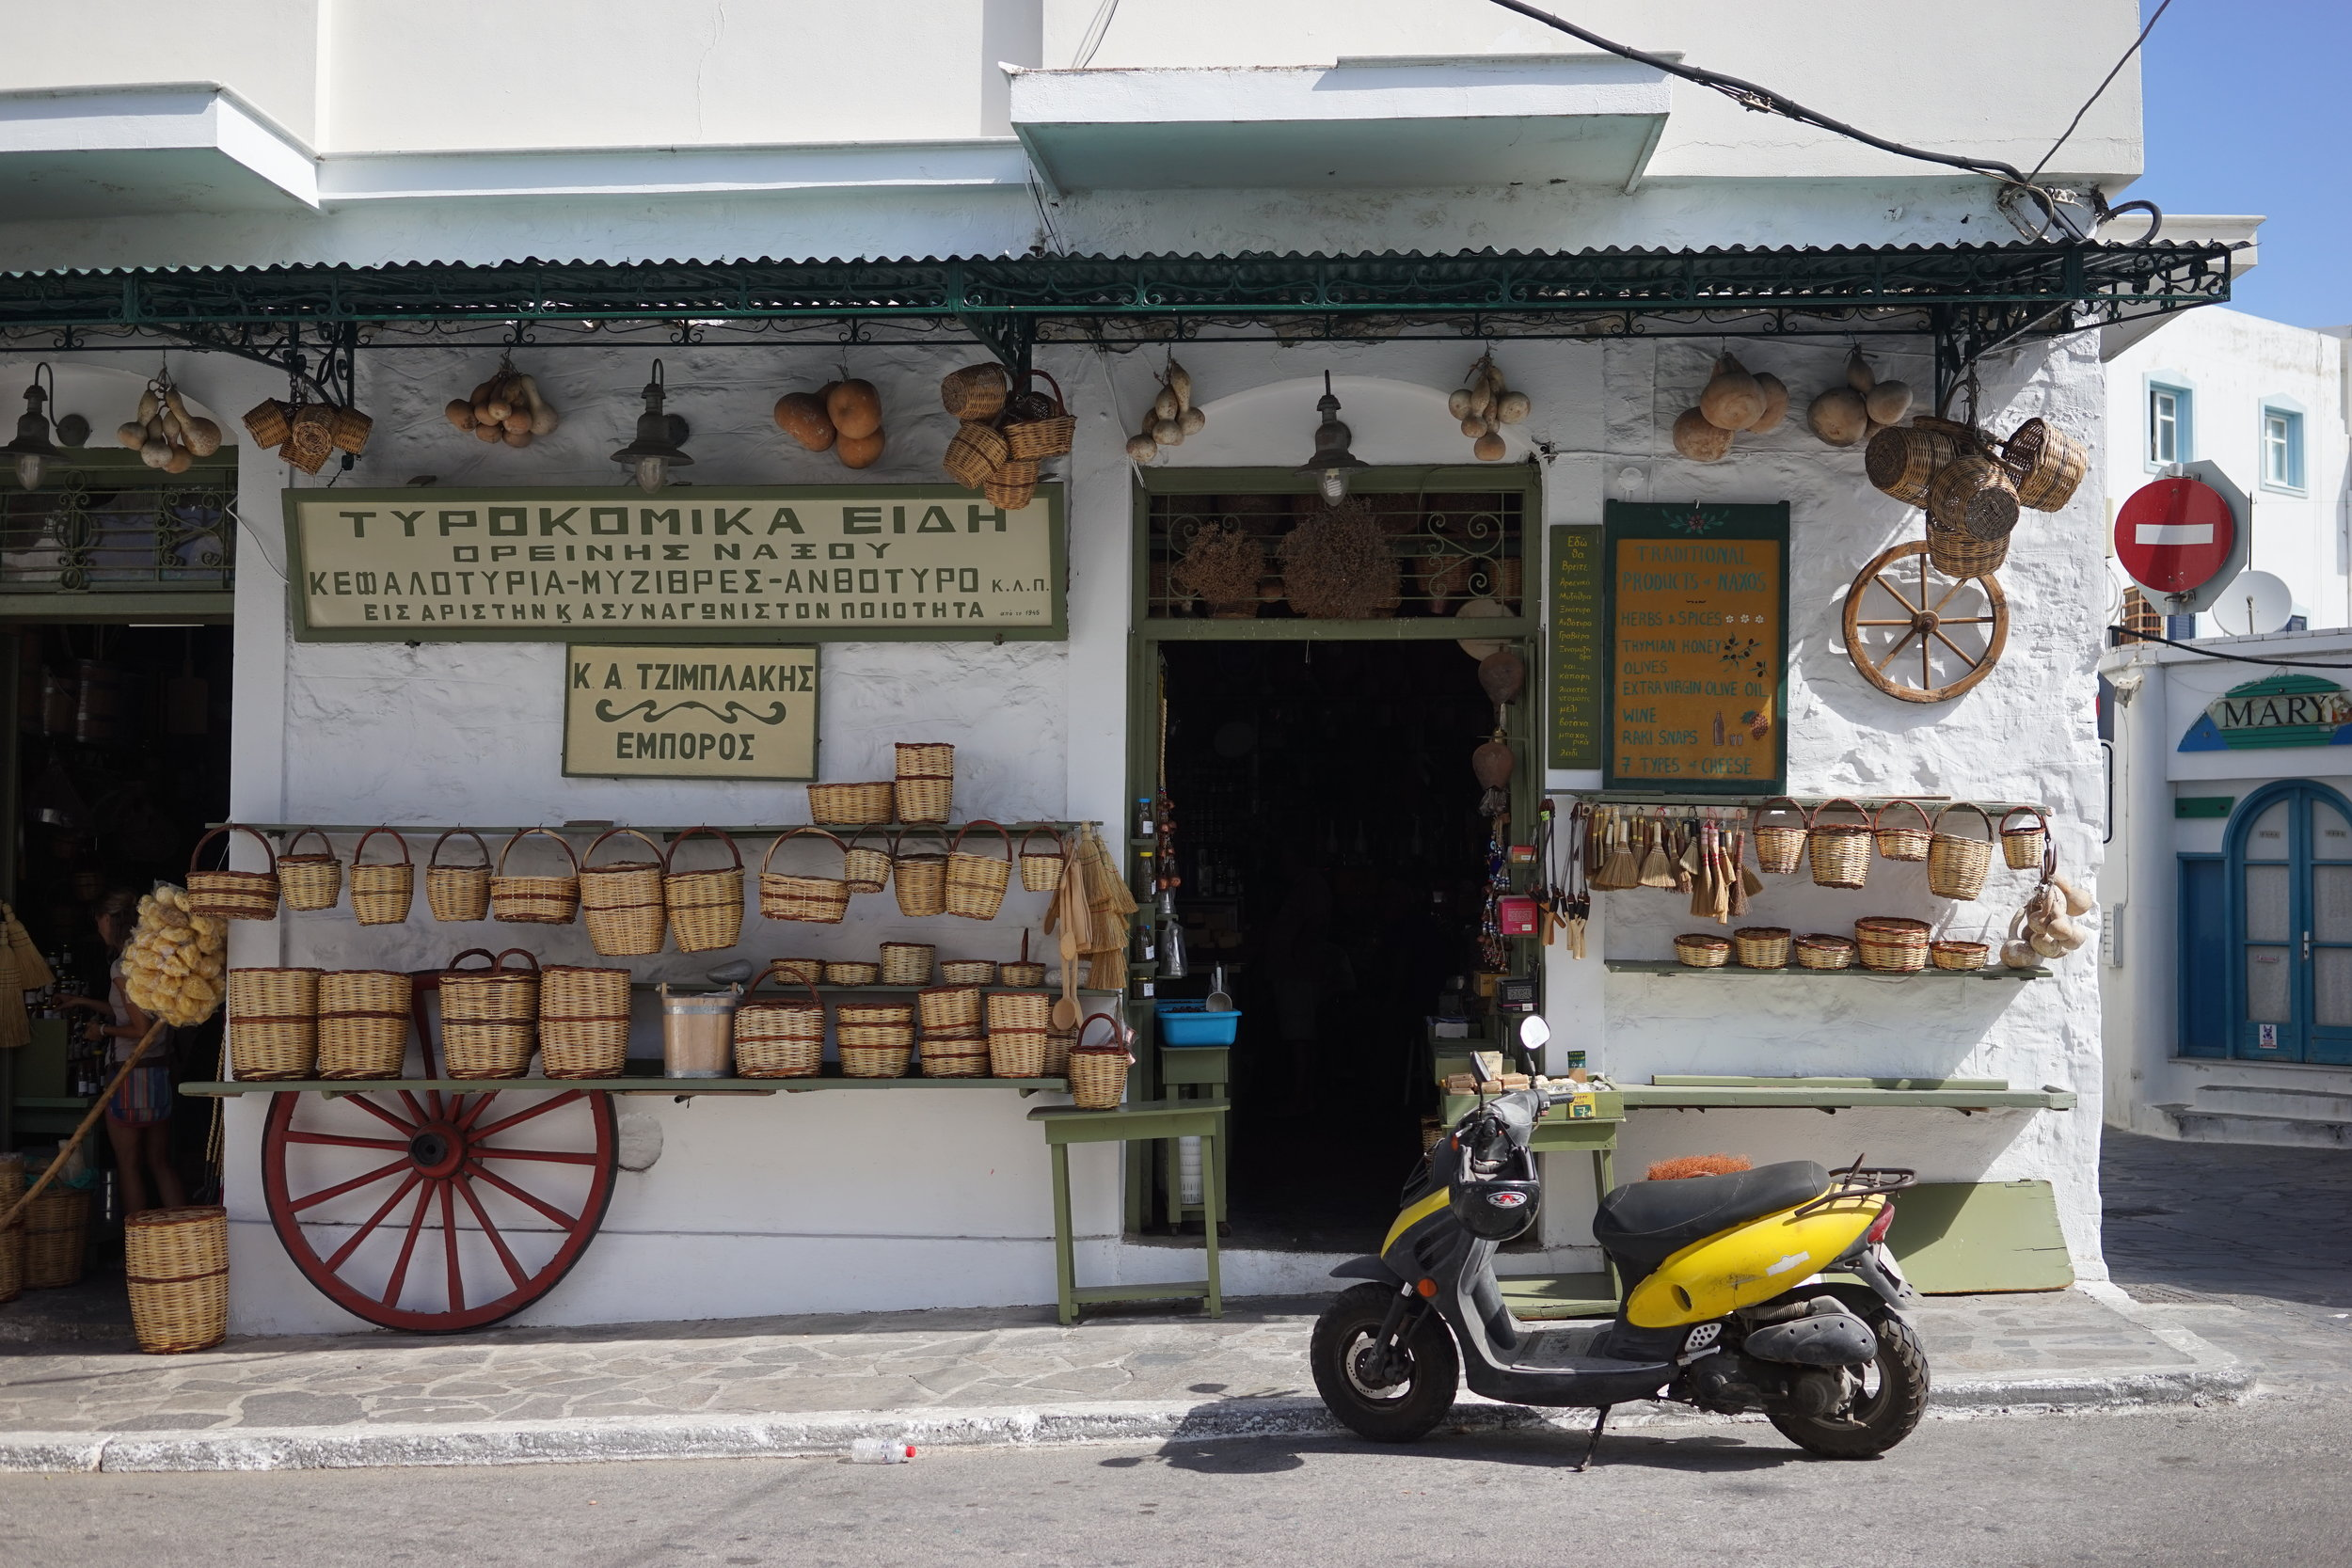 Cuisine of Naxos - National Geographic